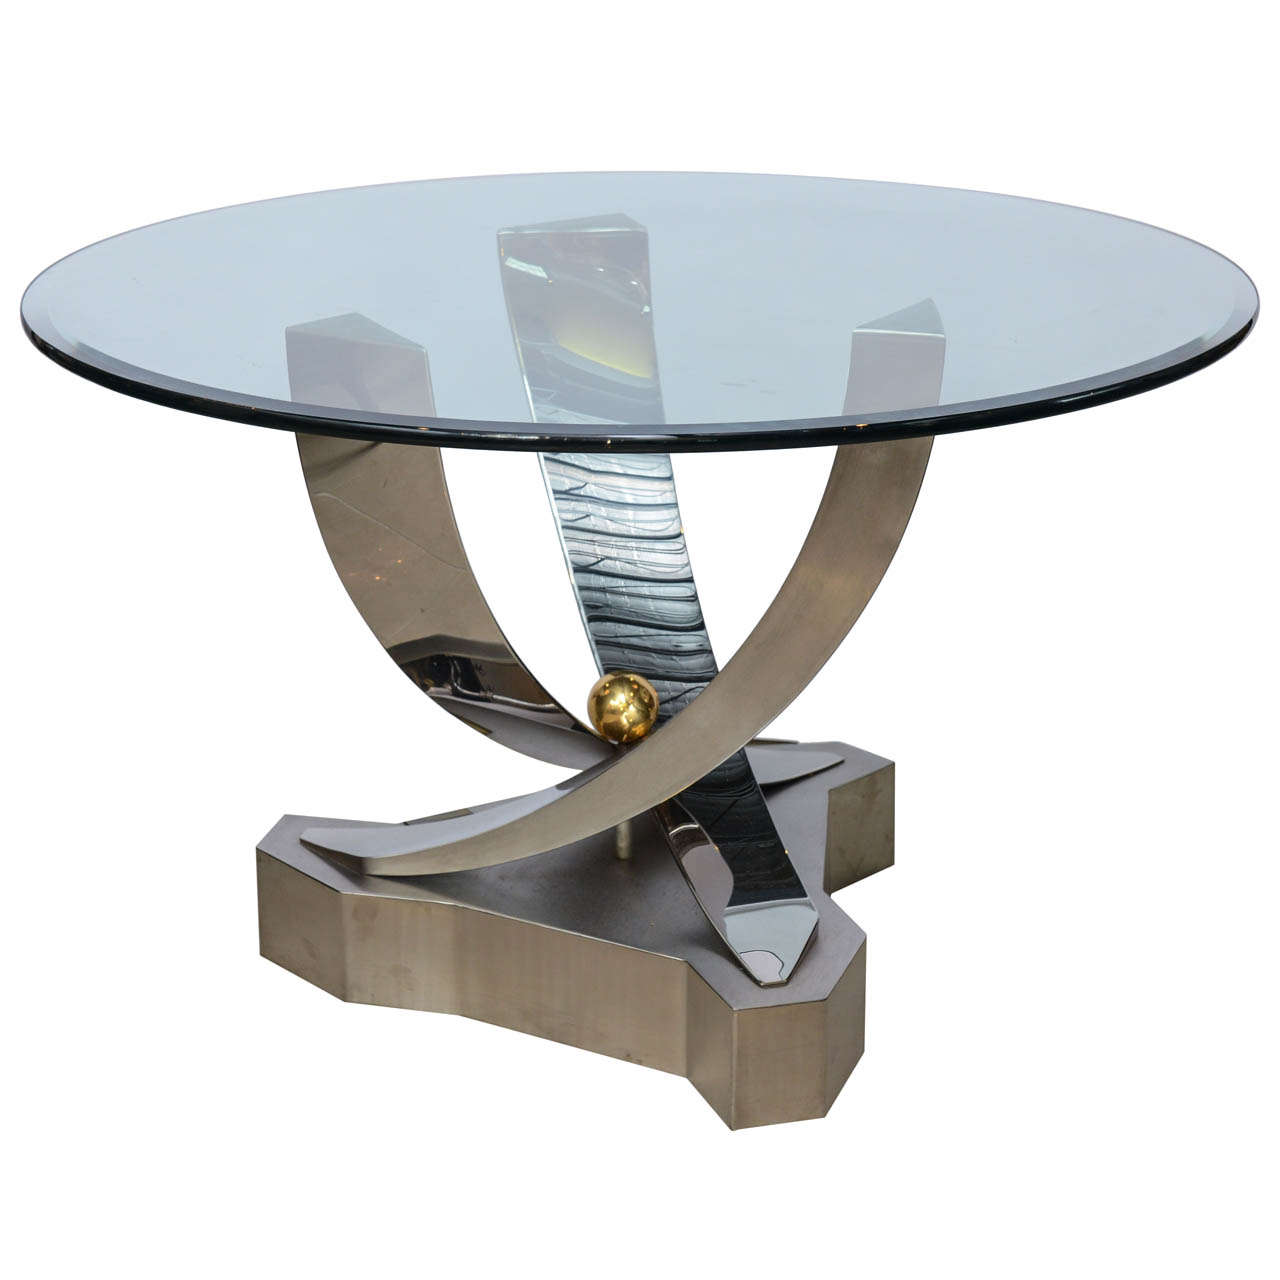 india with medina online table center in laminate finish buy